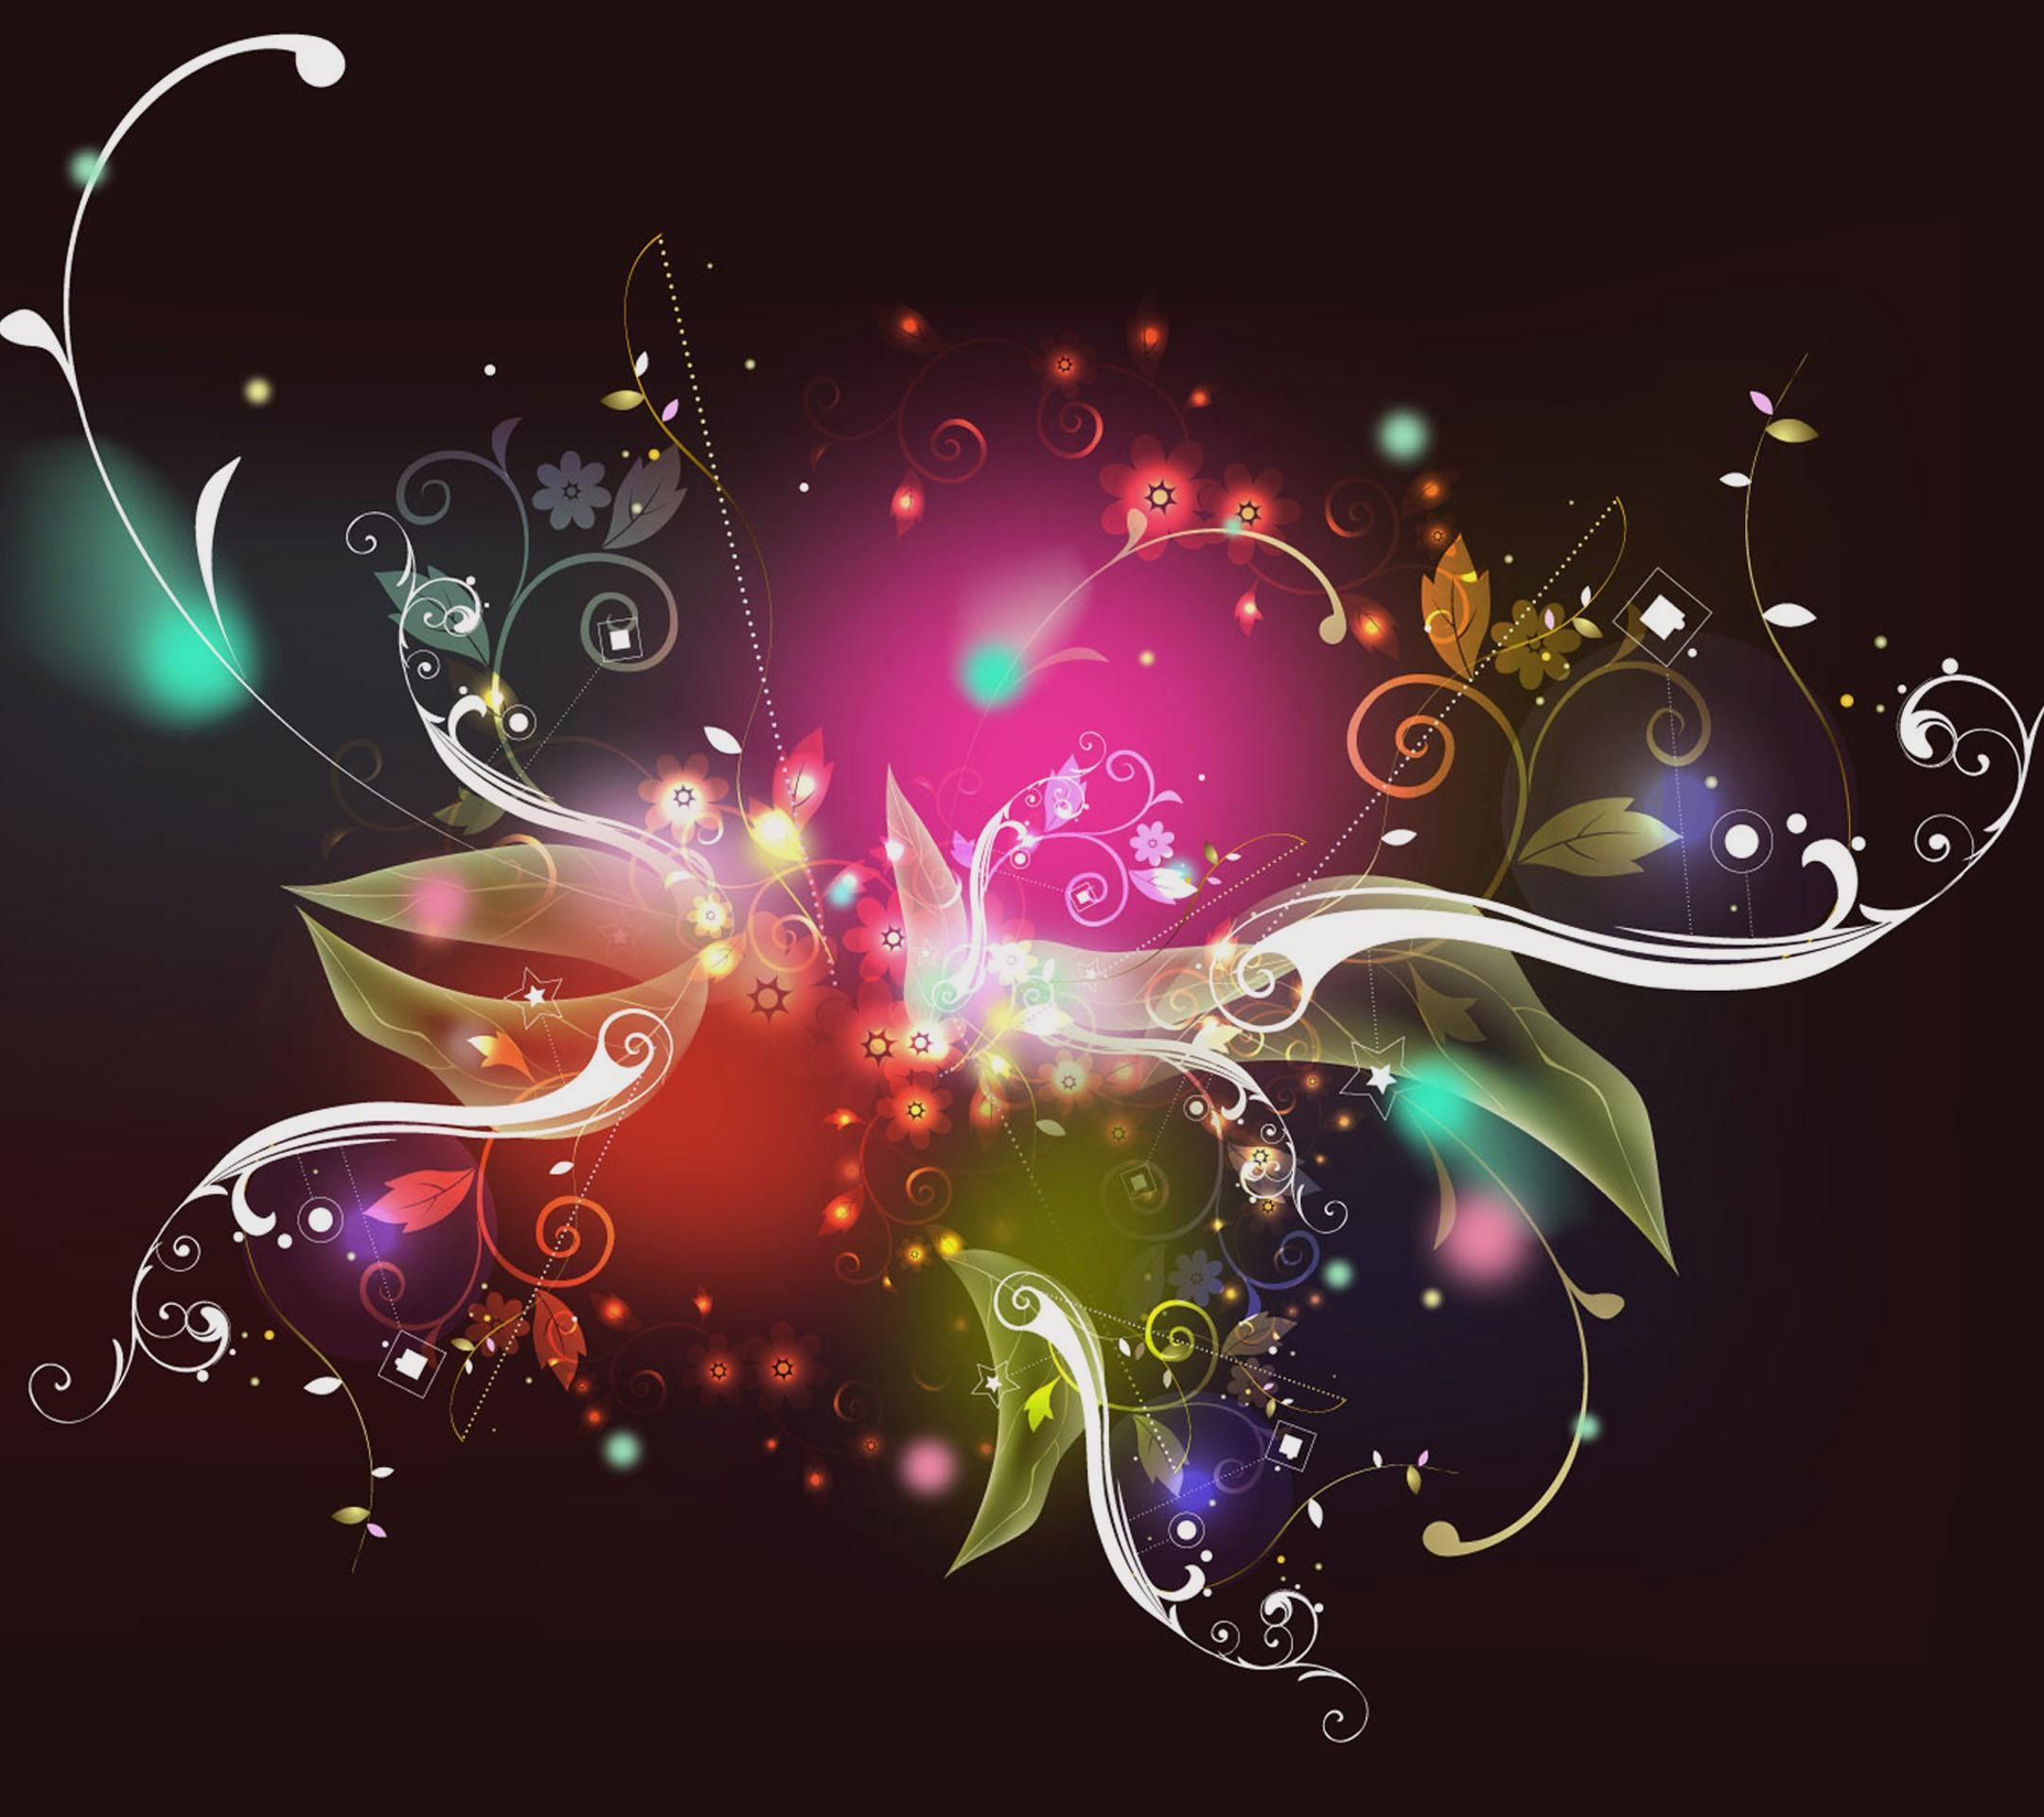 Abstract Flower Wallpaper HD Download